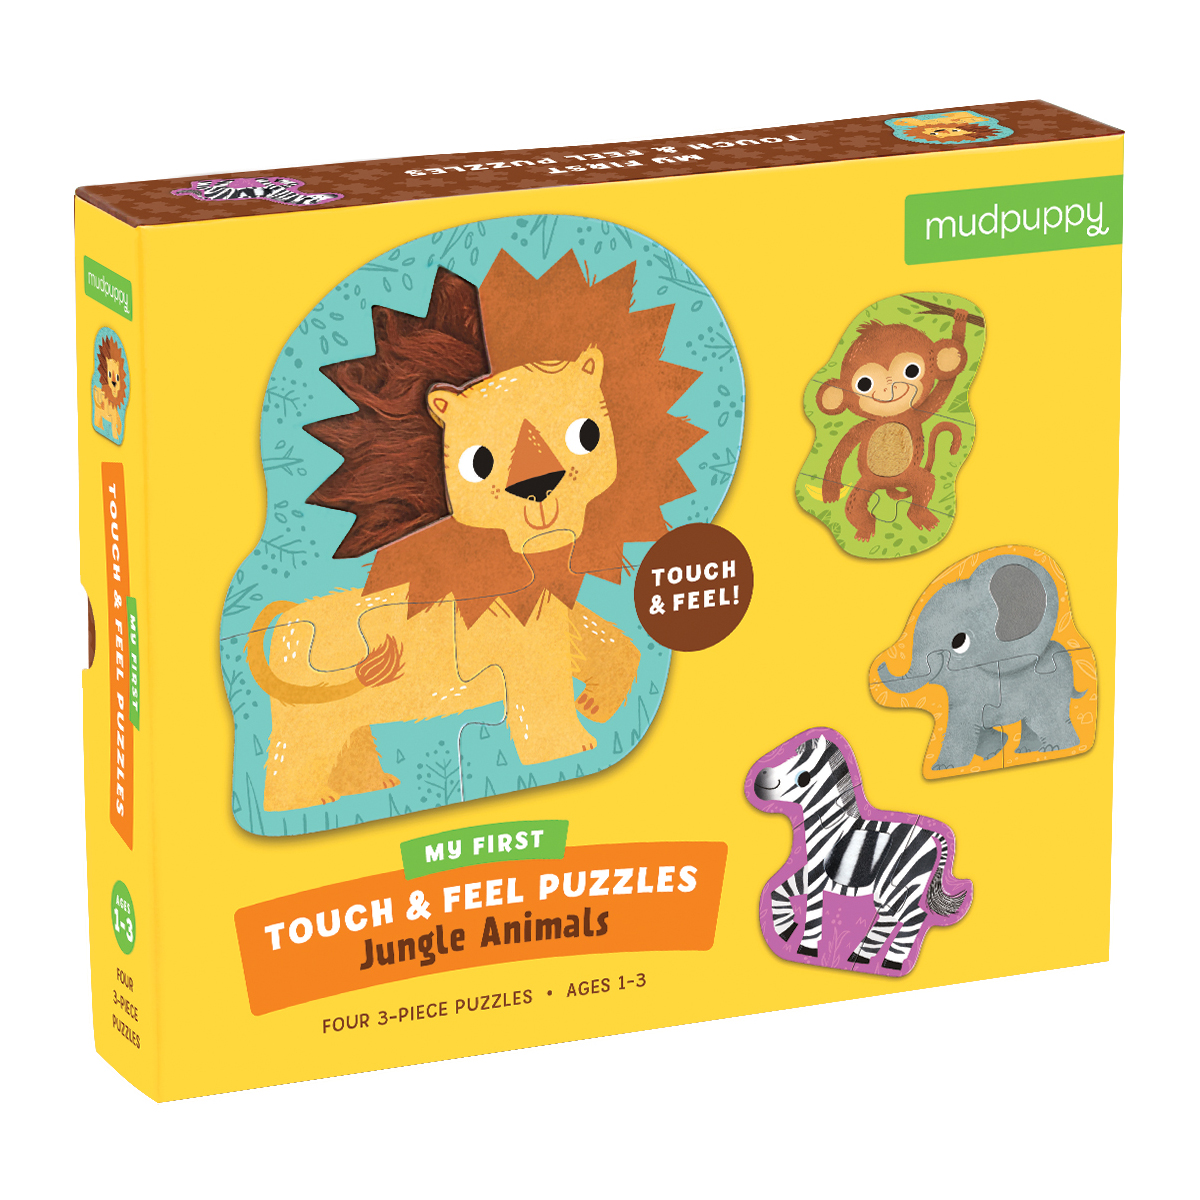 Mudpuppy Jungle Animals My First Touch & Feel Puzzles